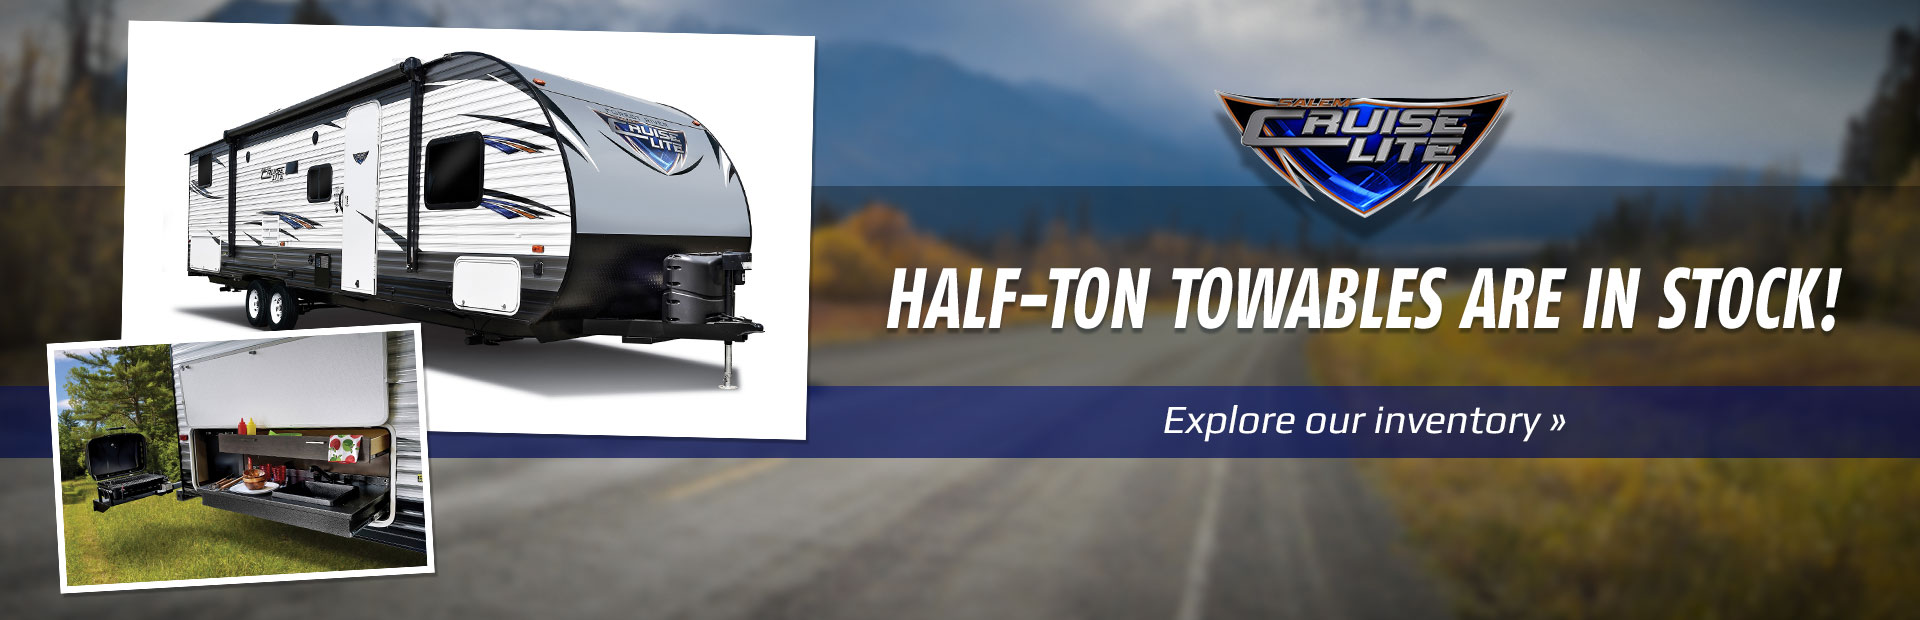 Half-ton towables are in stock! Click here to explore our inventory.